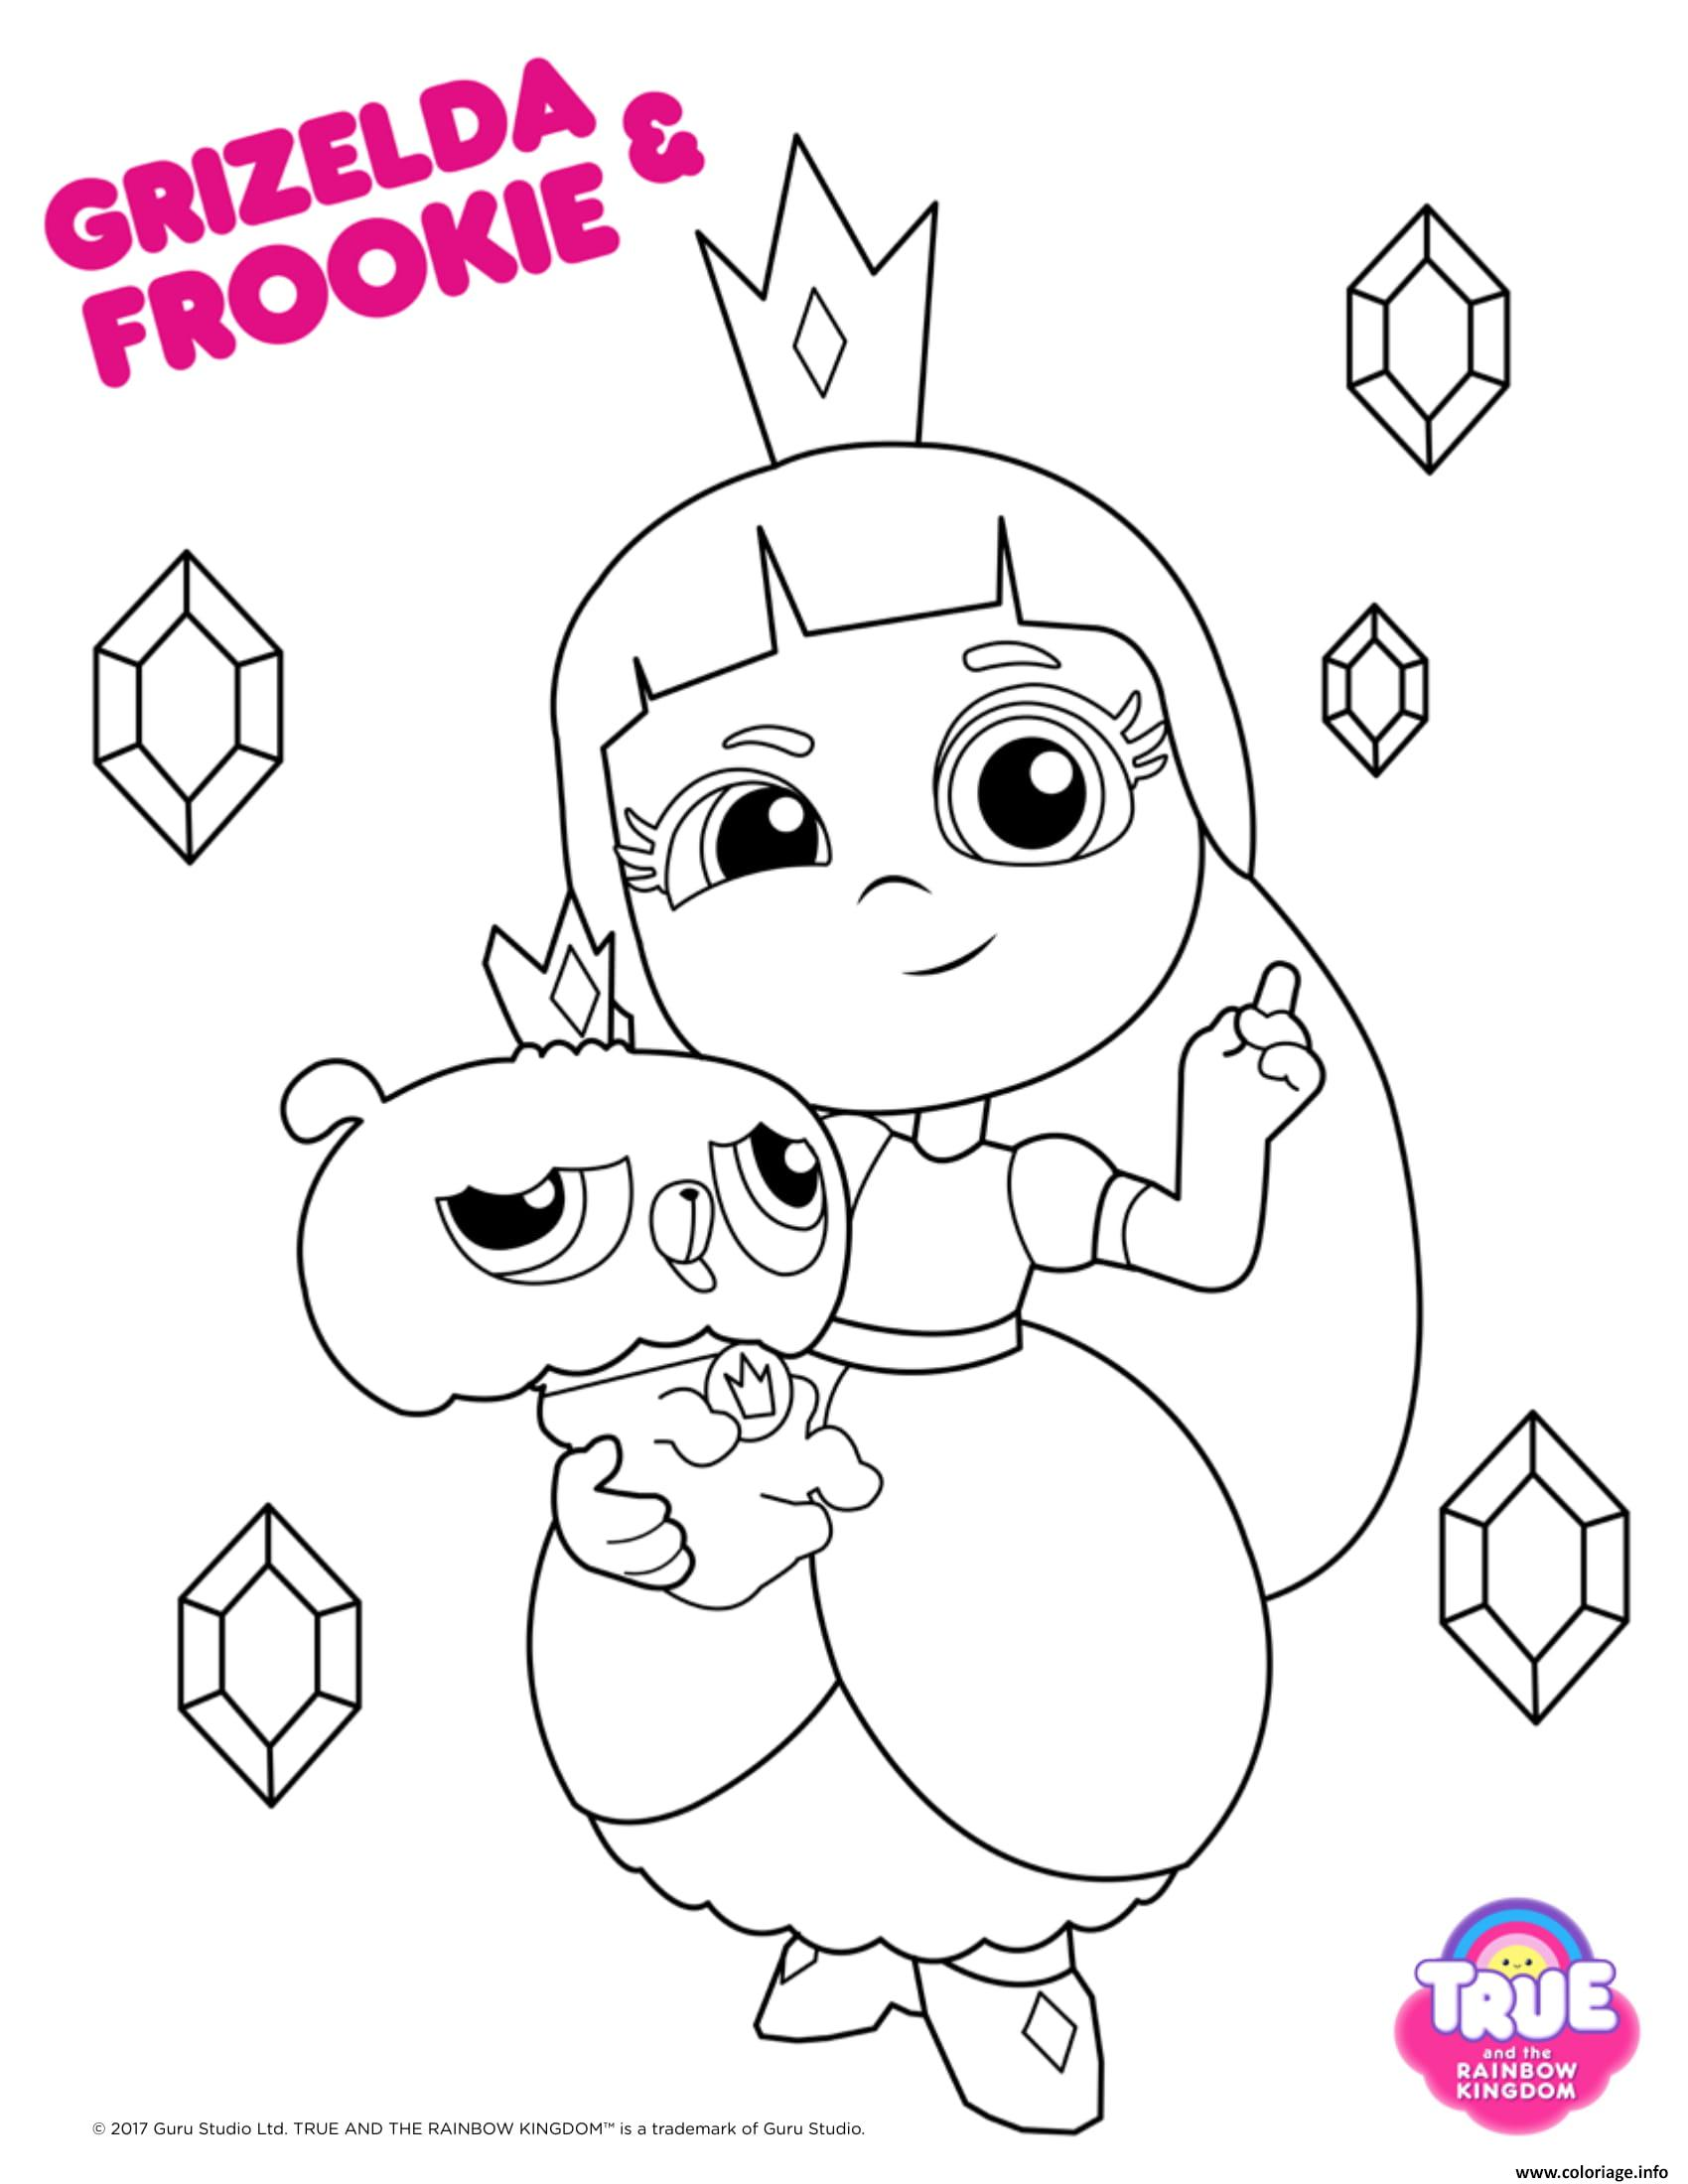 Dessin Grizelda Frookie 1 true and the rainbow kingdom Coloriage Gratuit à Imprimer